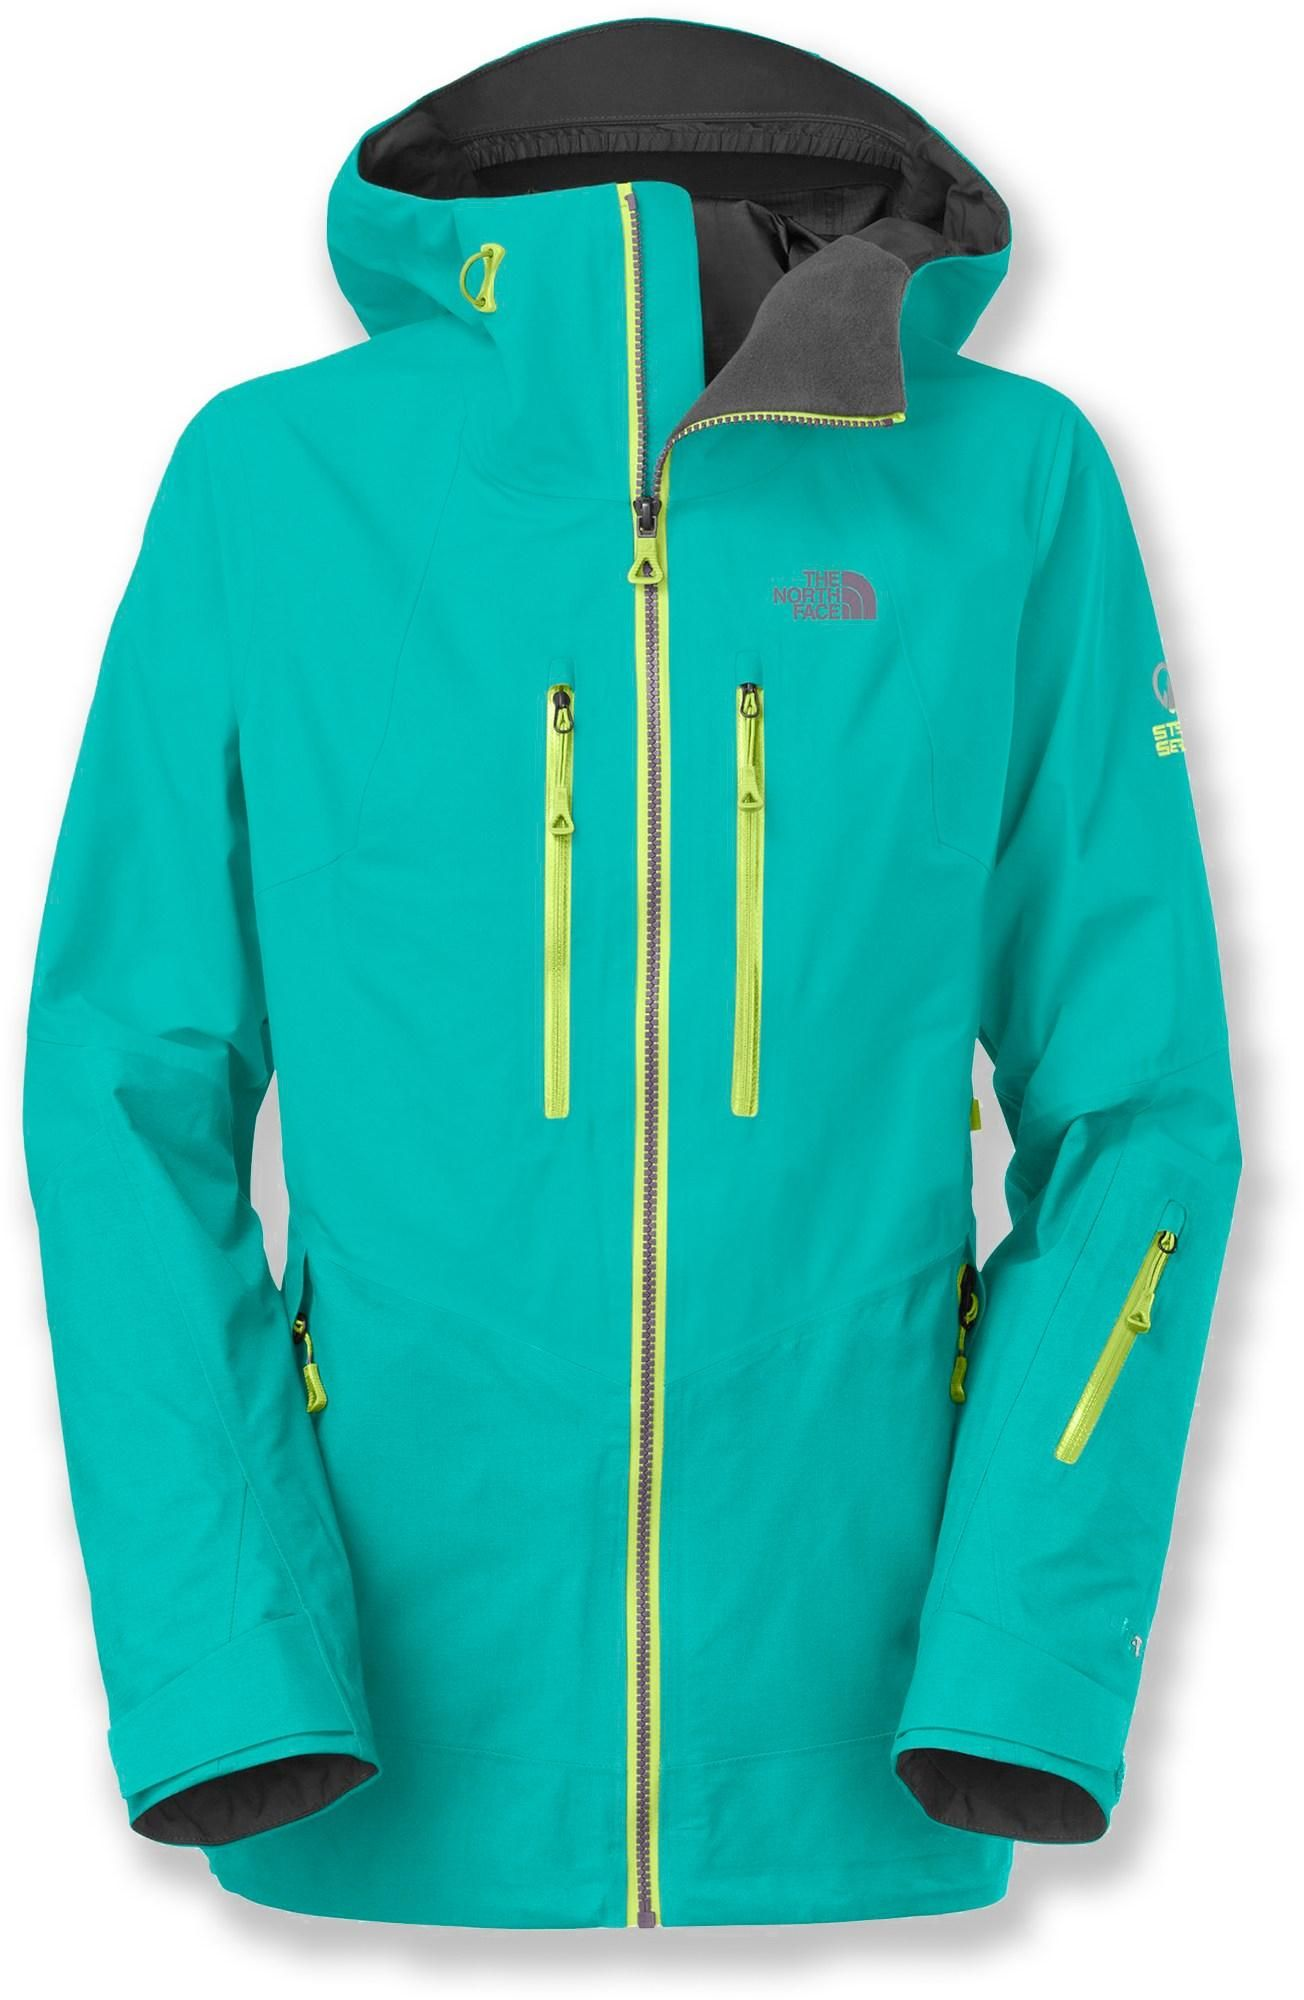 e4a6d7da5c83 The North Face Free Thinker women s jacket boasts weather-nullifying  Gore-Tex® Pro protection to withstand demanding use and keep you  comfortable on big ...